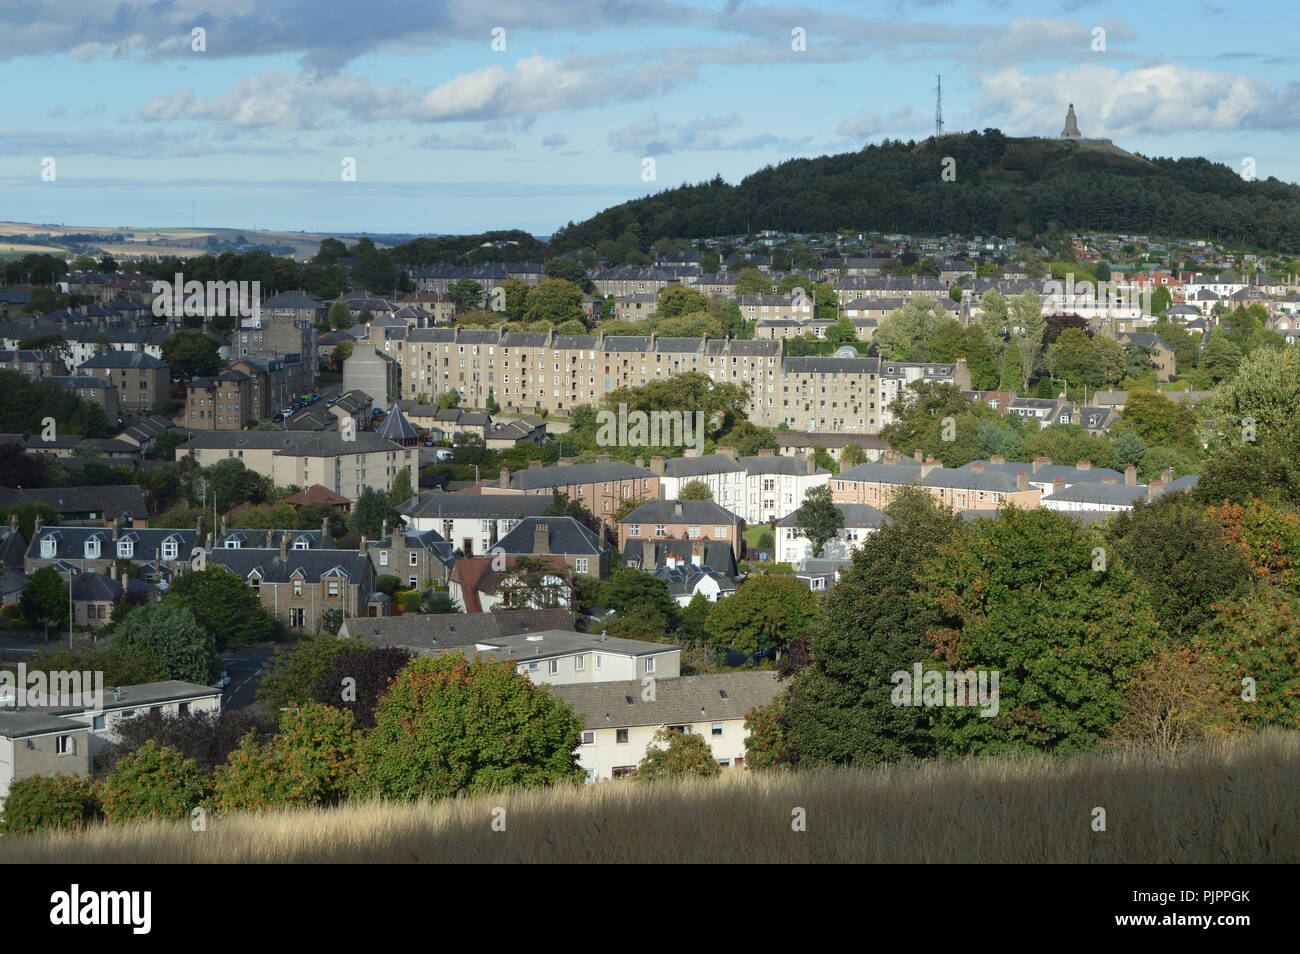 View from Balgay Hill over Lochee with Cox's Stack, Dundee, Scotland, September 2018 Stock Photo